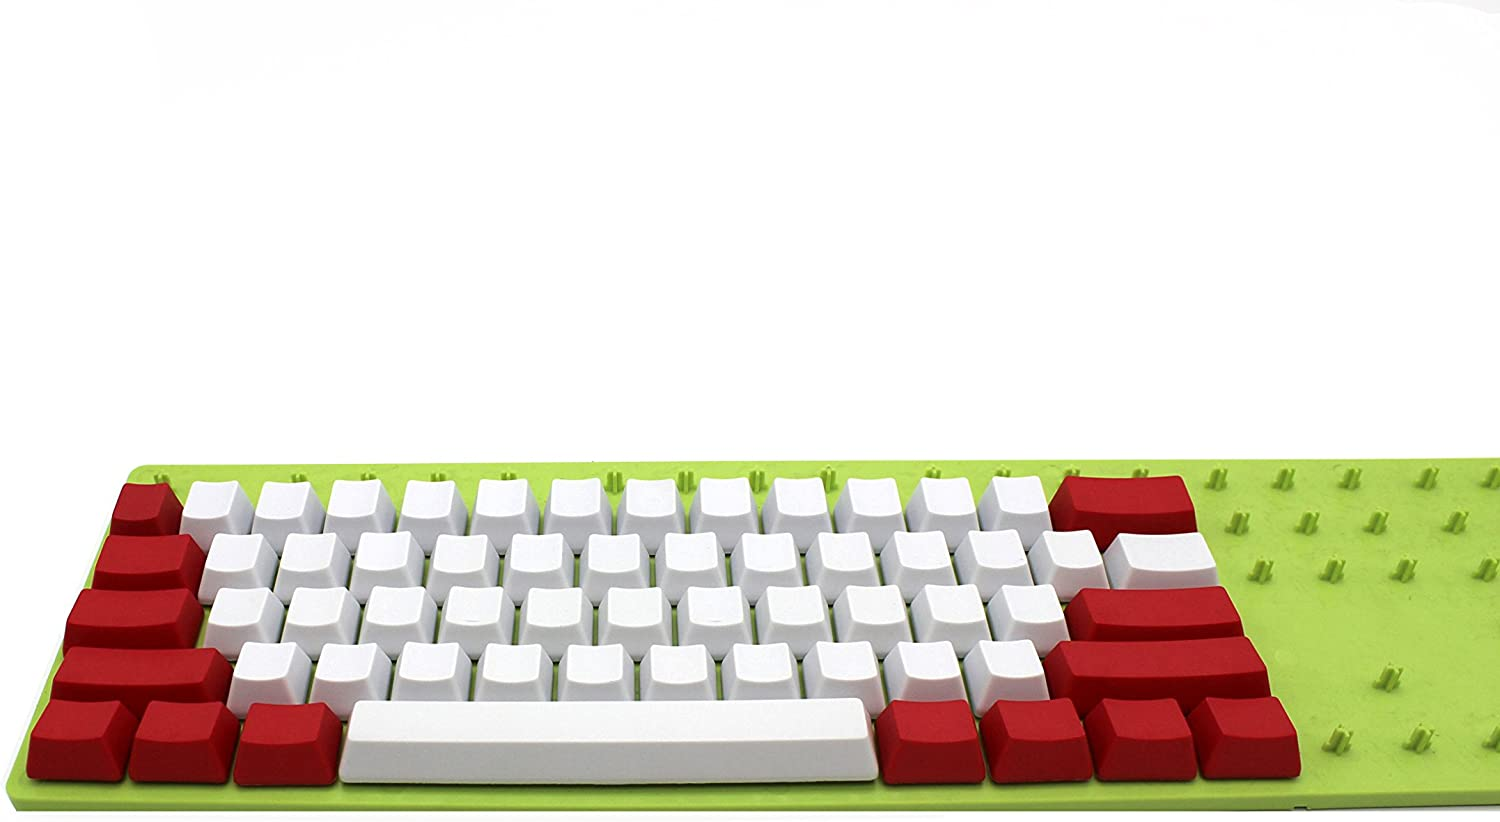 Blank 87 White red Thick PBT OEM Profile Keycap for MX Switches Mechanical Keyboard Only Keycap